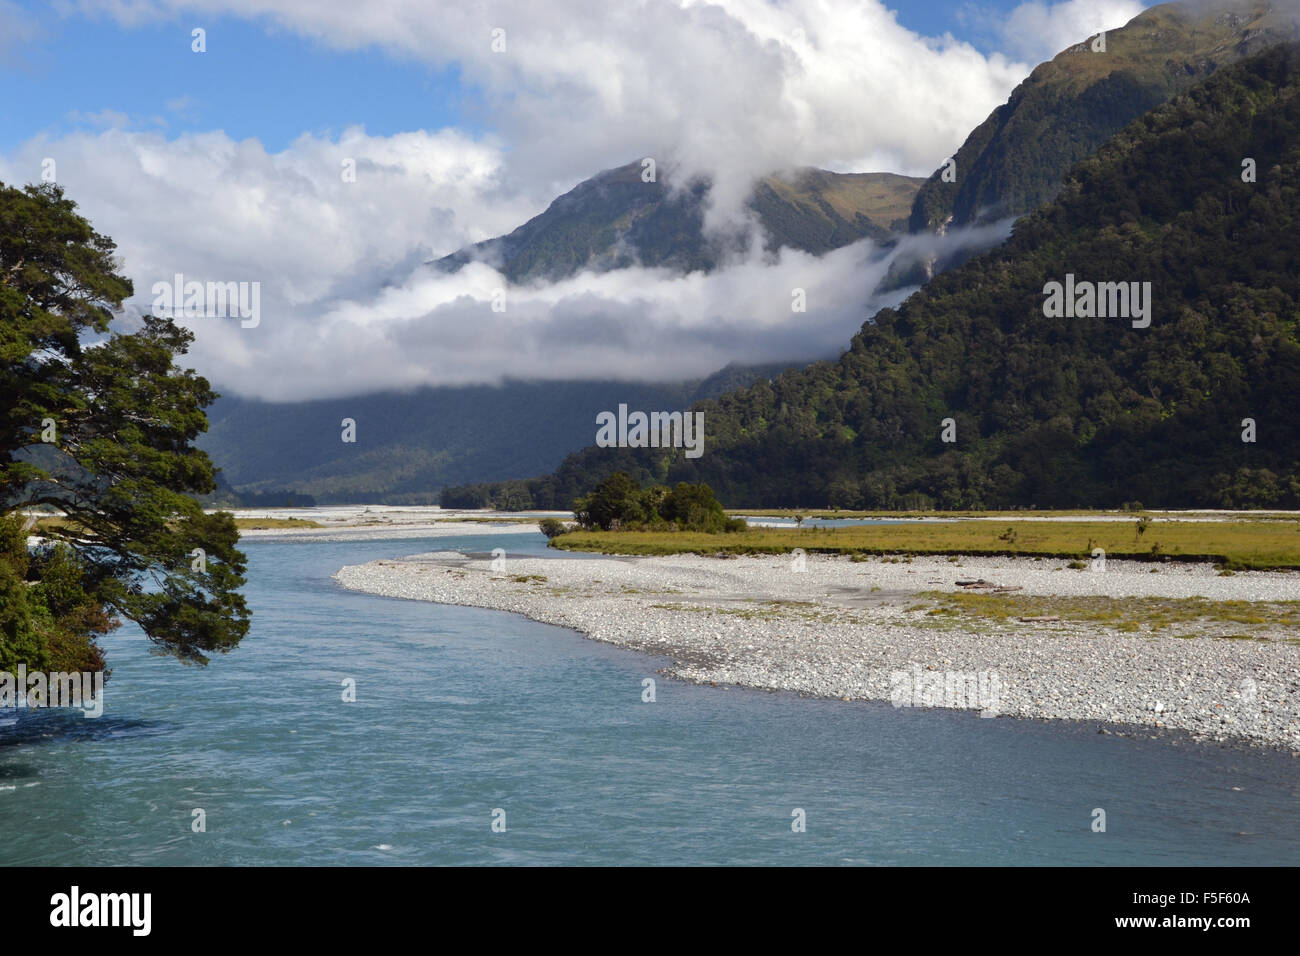 New Zealand or Aotearoa, 'the land of the long white cloud' in Maori, and a river, South island, New Zealand - Stock Image